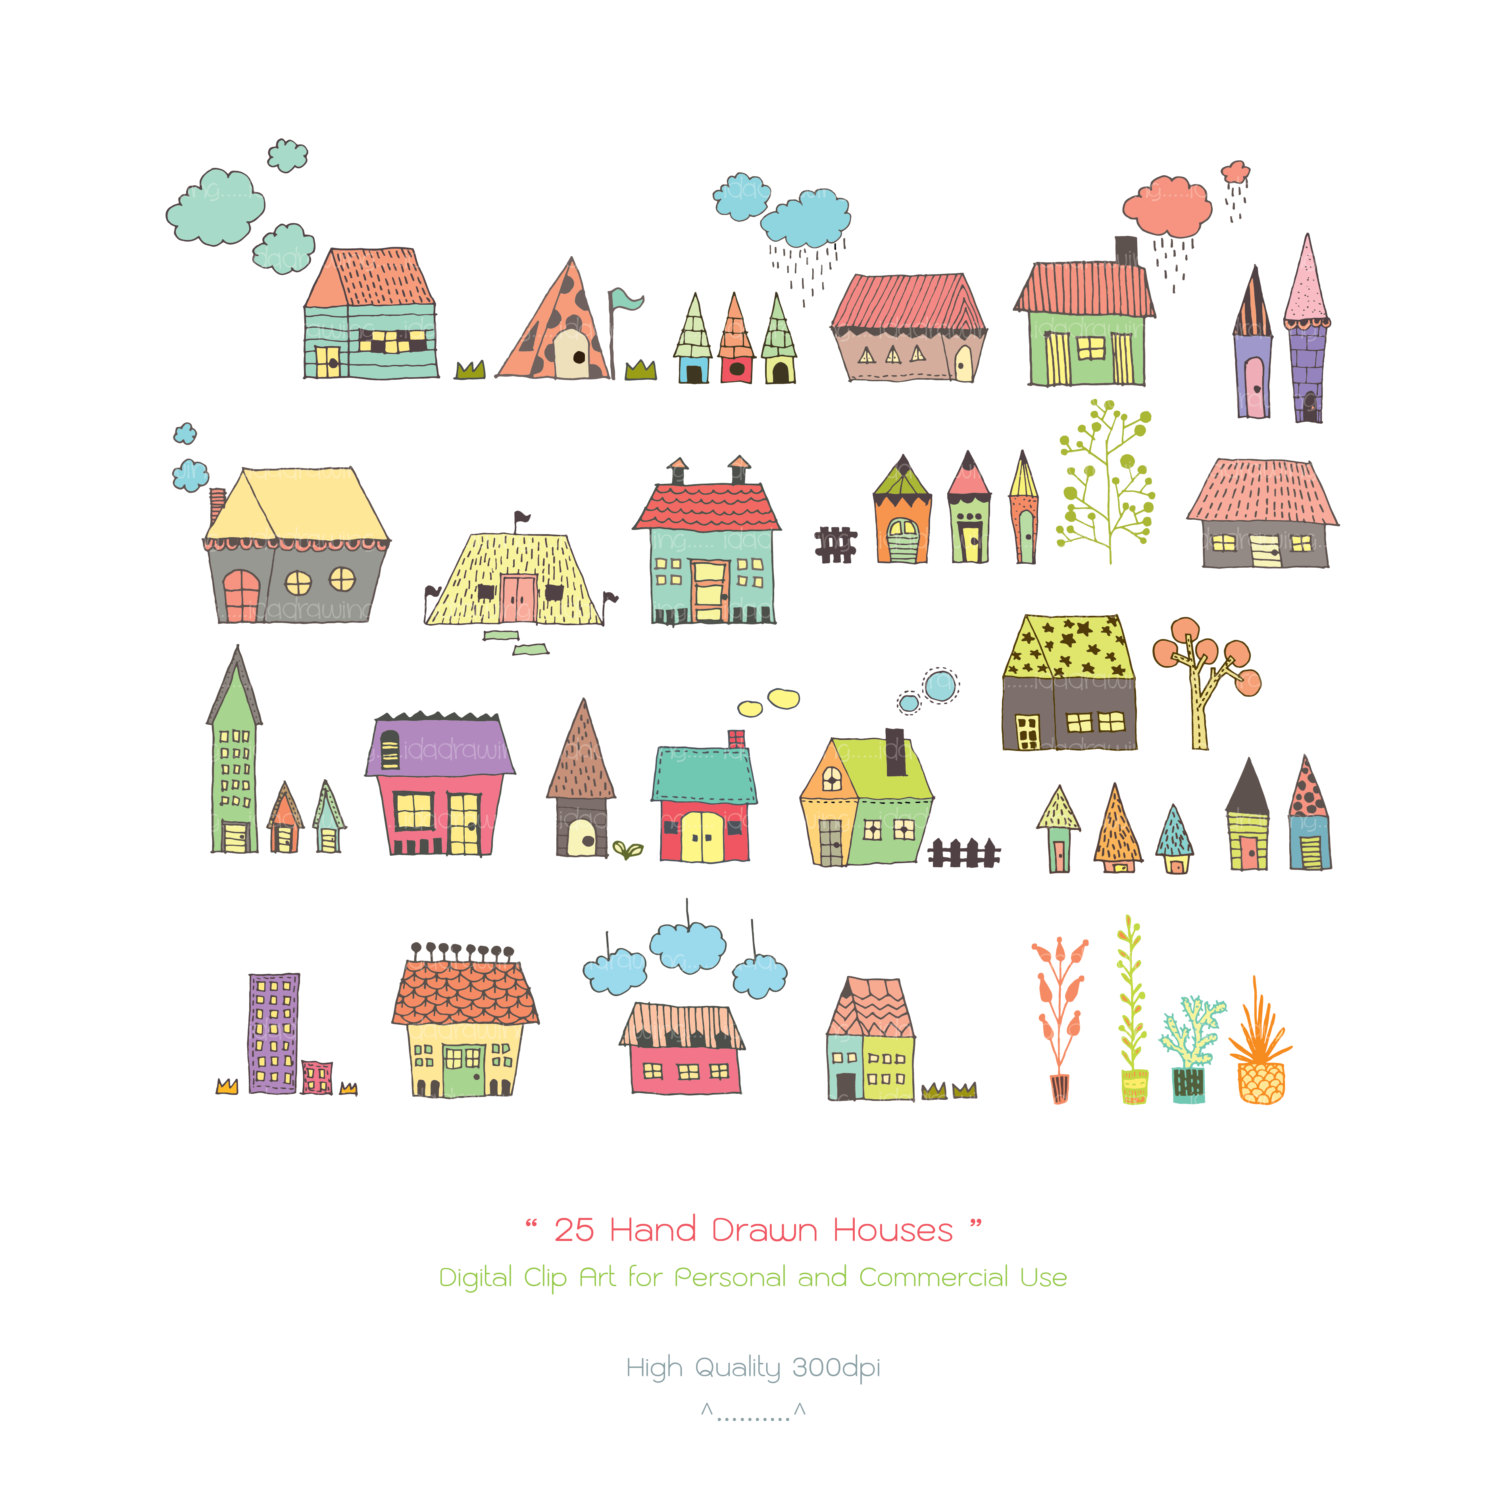 25 Hand Drawn Houses Digital Clipart - H-25 Hand Drawn Houses Digital Clipart - Houses Clipart - Hand Drawn Clipart - Cottage Clipart - Home Clipart - Scrapbooking - Housewarming-2